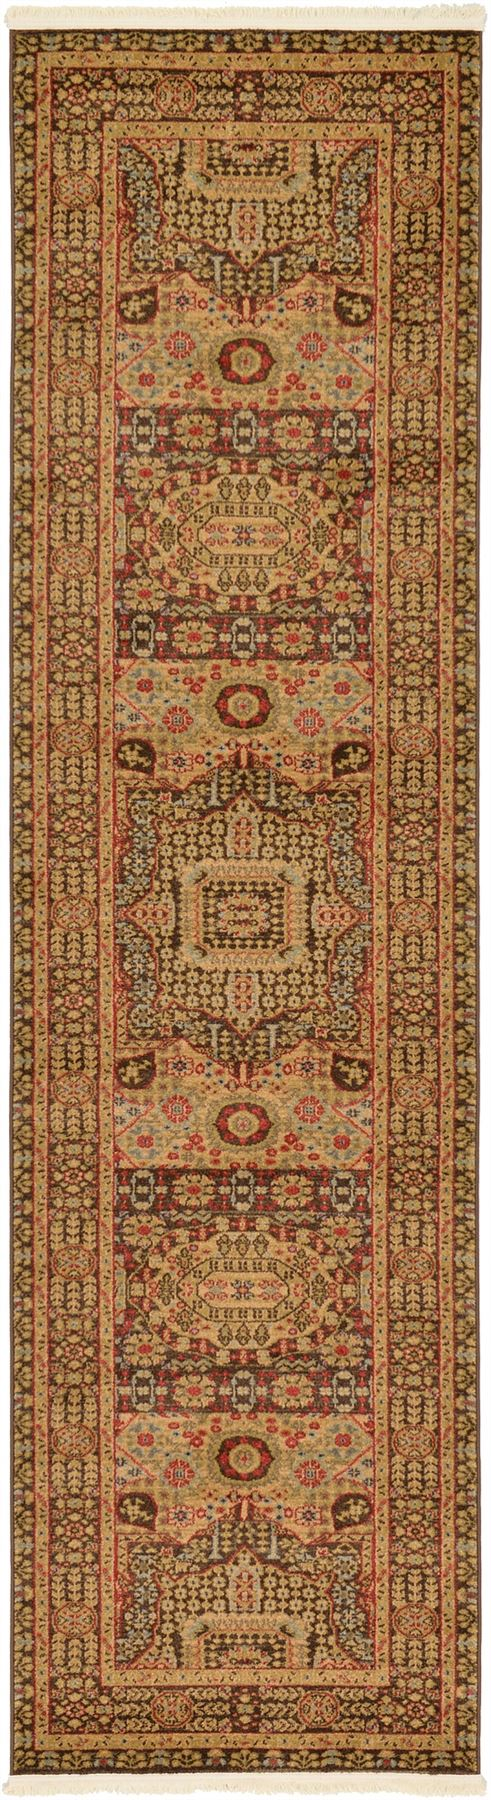 light area rug blue for cream beautiful pink rugs lovely interior and curtains your floor floral decor bedroom